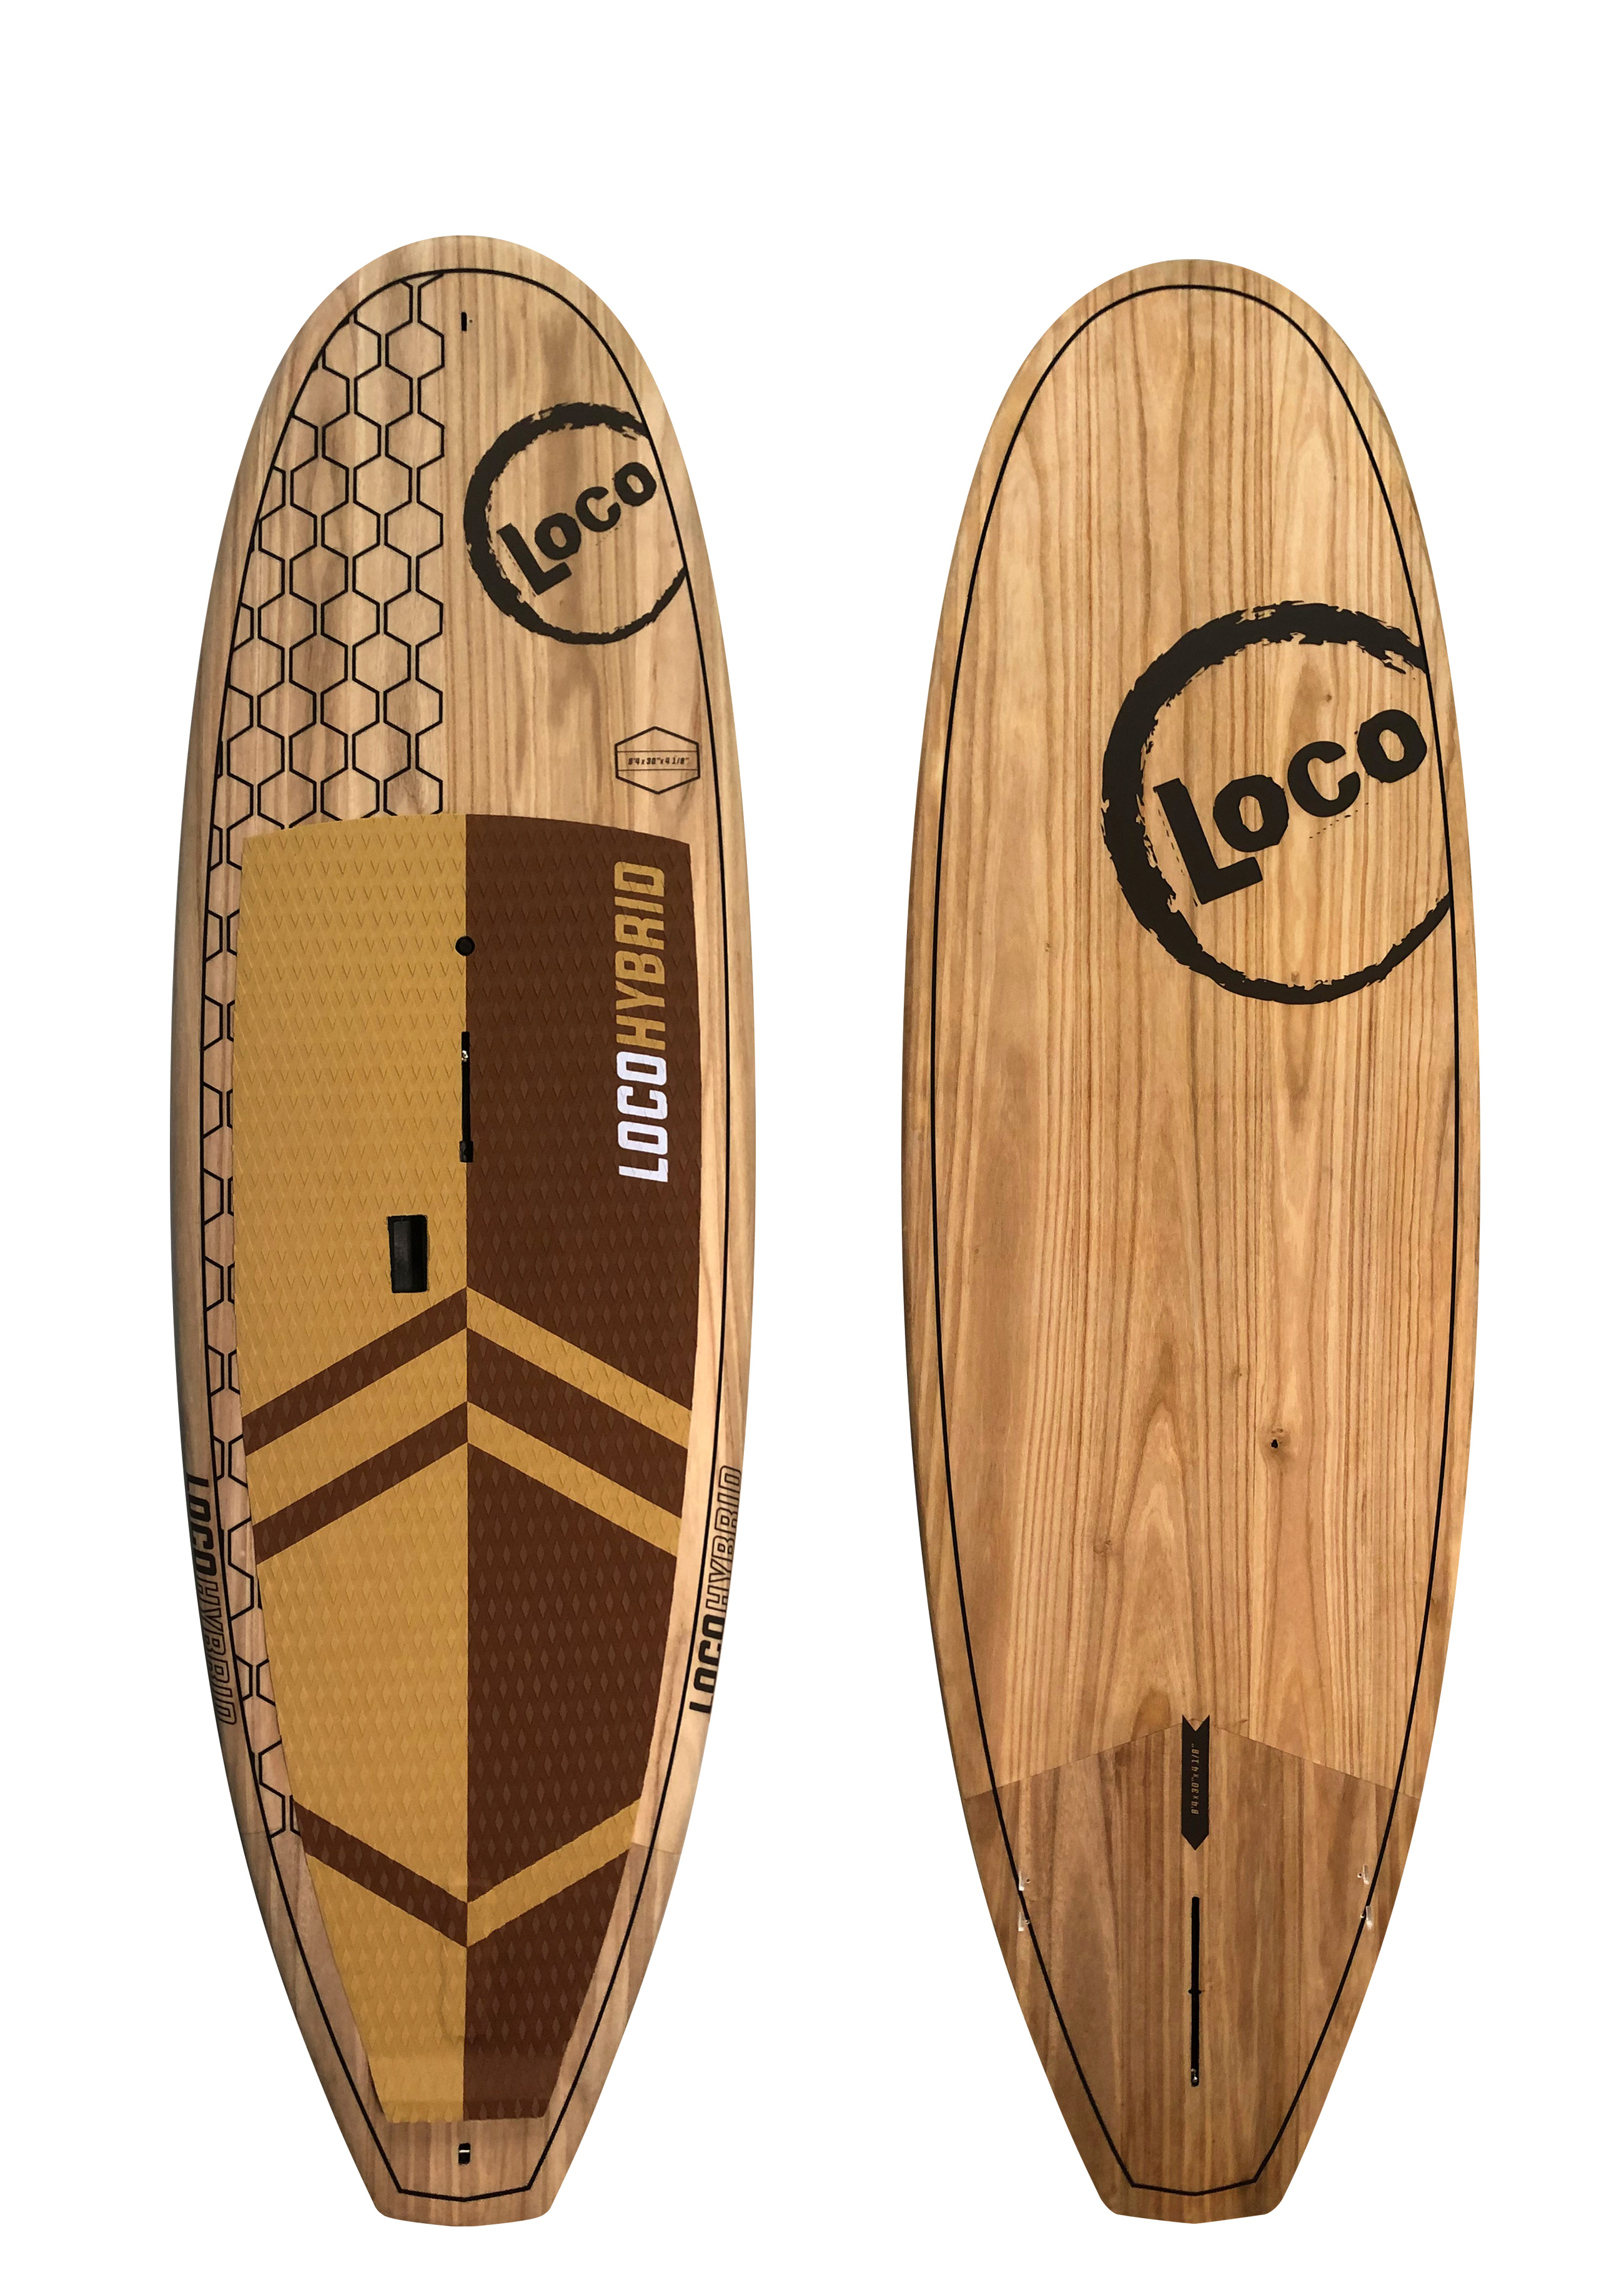 2020-Loco-Hybrid-SUP-In-Wood